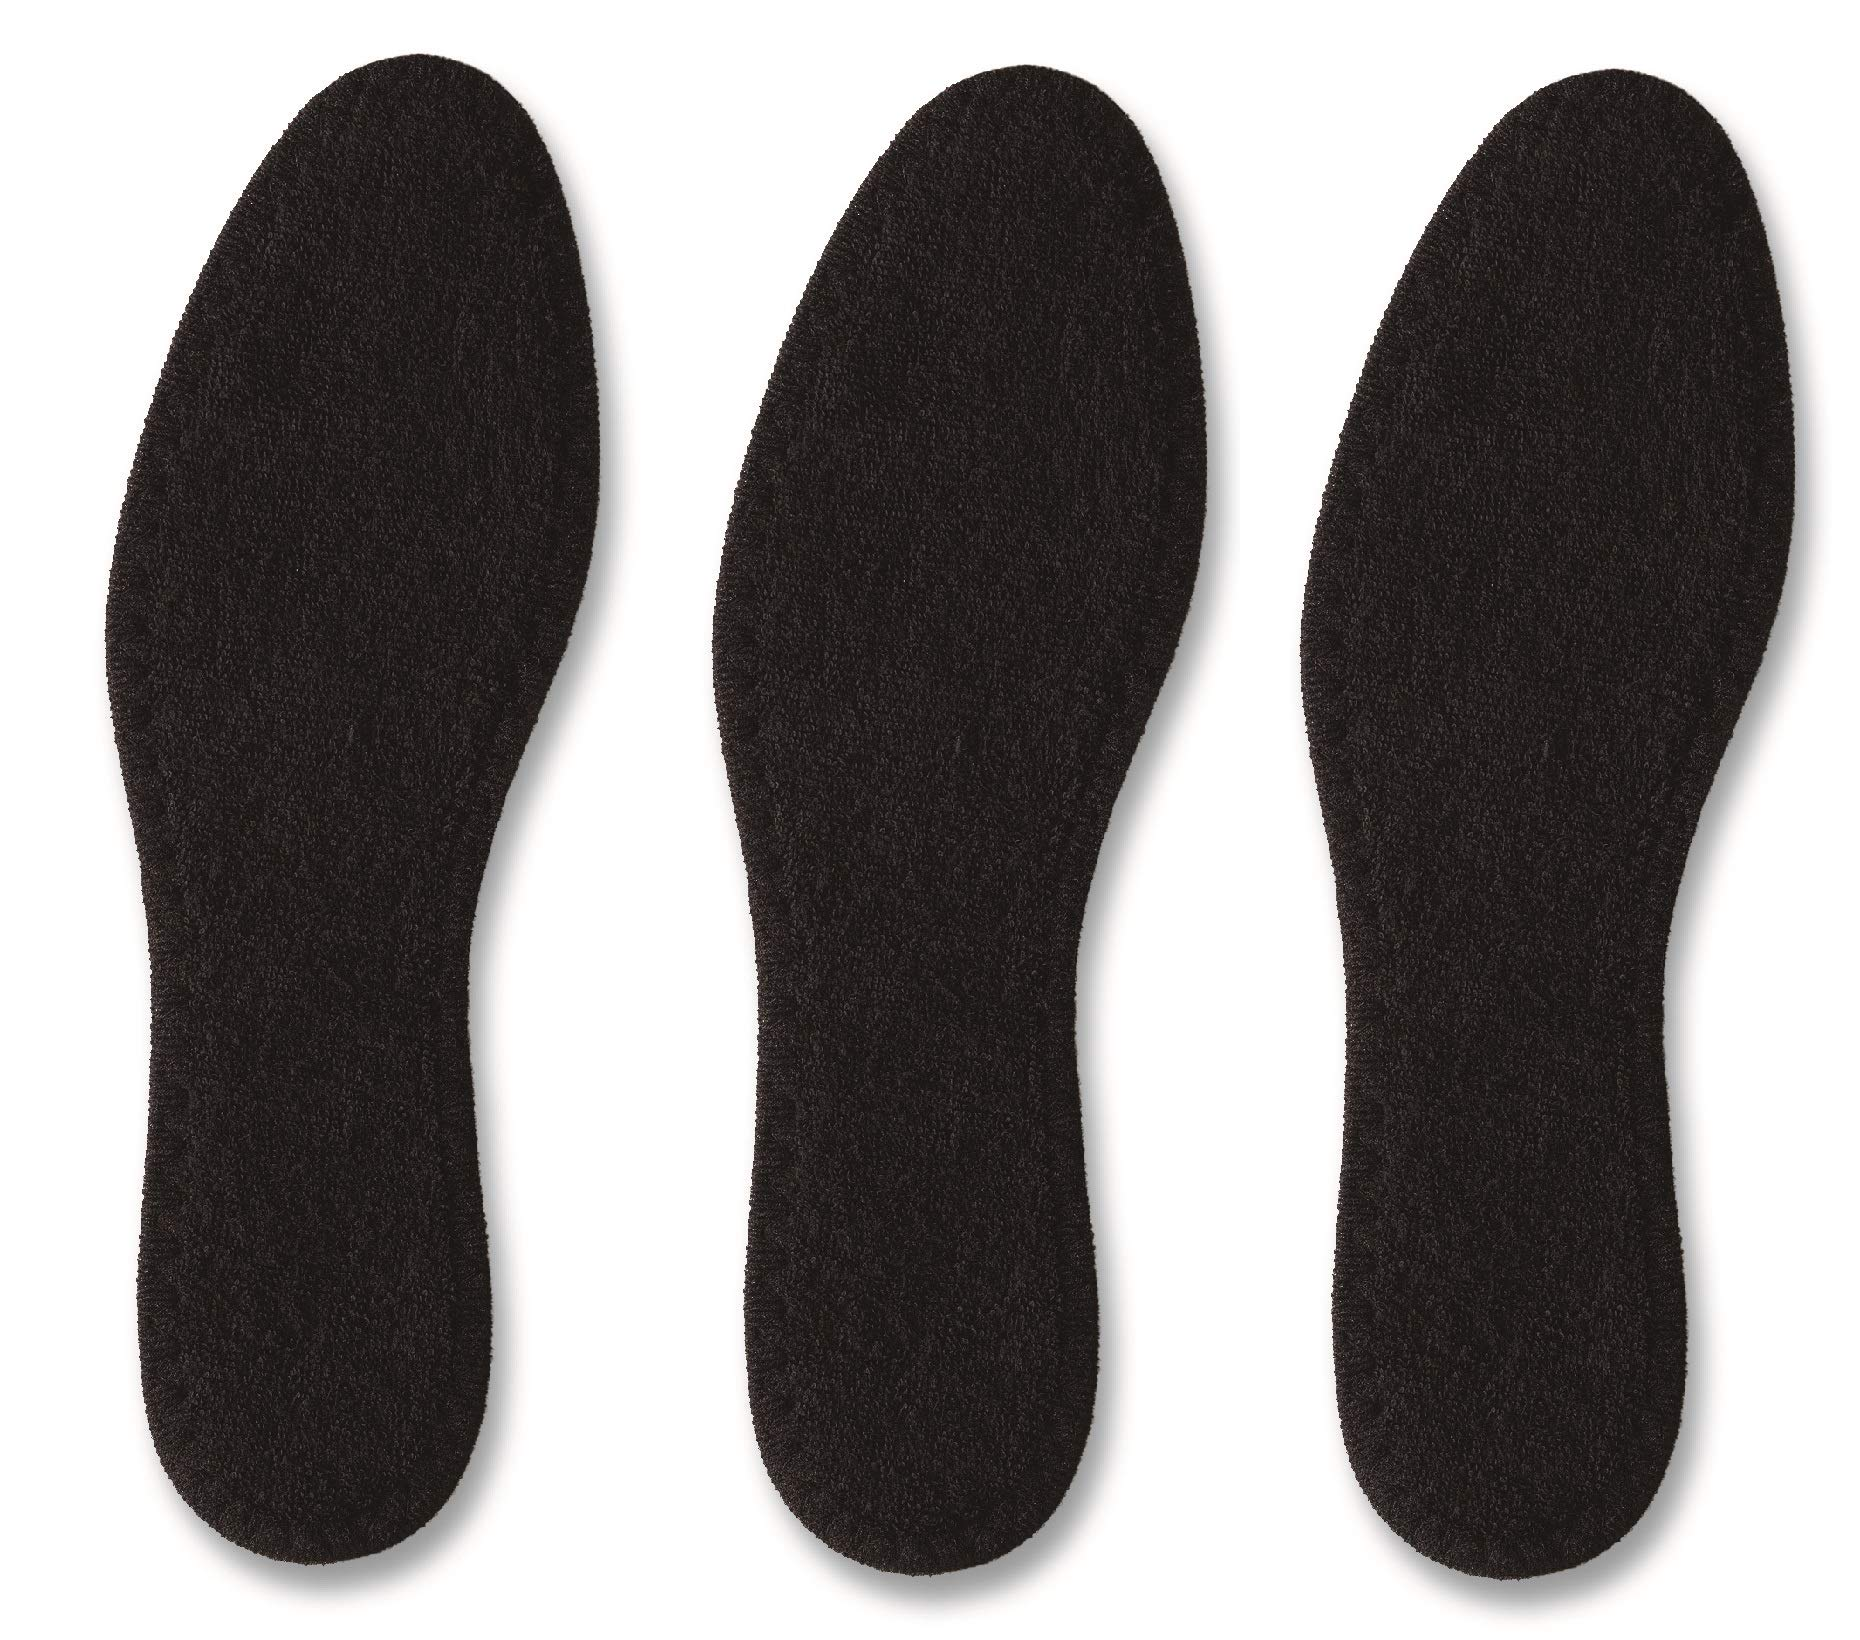 Pedag Pedag Summer Washable Pure Cotton Terry Barefoot Insole, Black, Us 9l/ EU 39, (Pack of 3), 6.4 Ounce